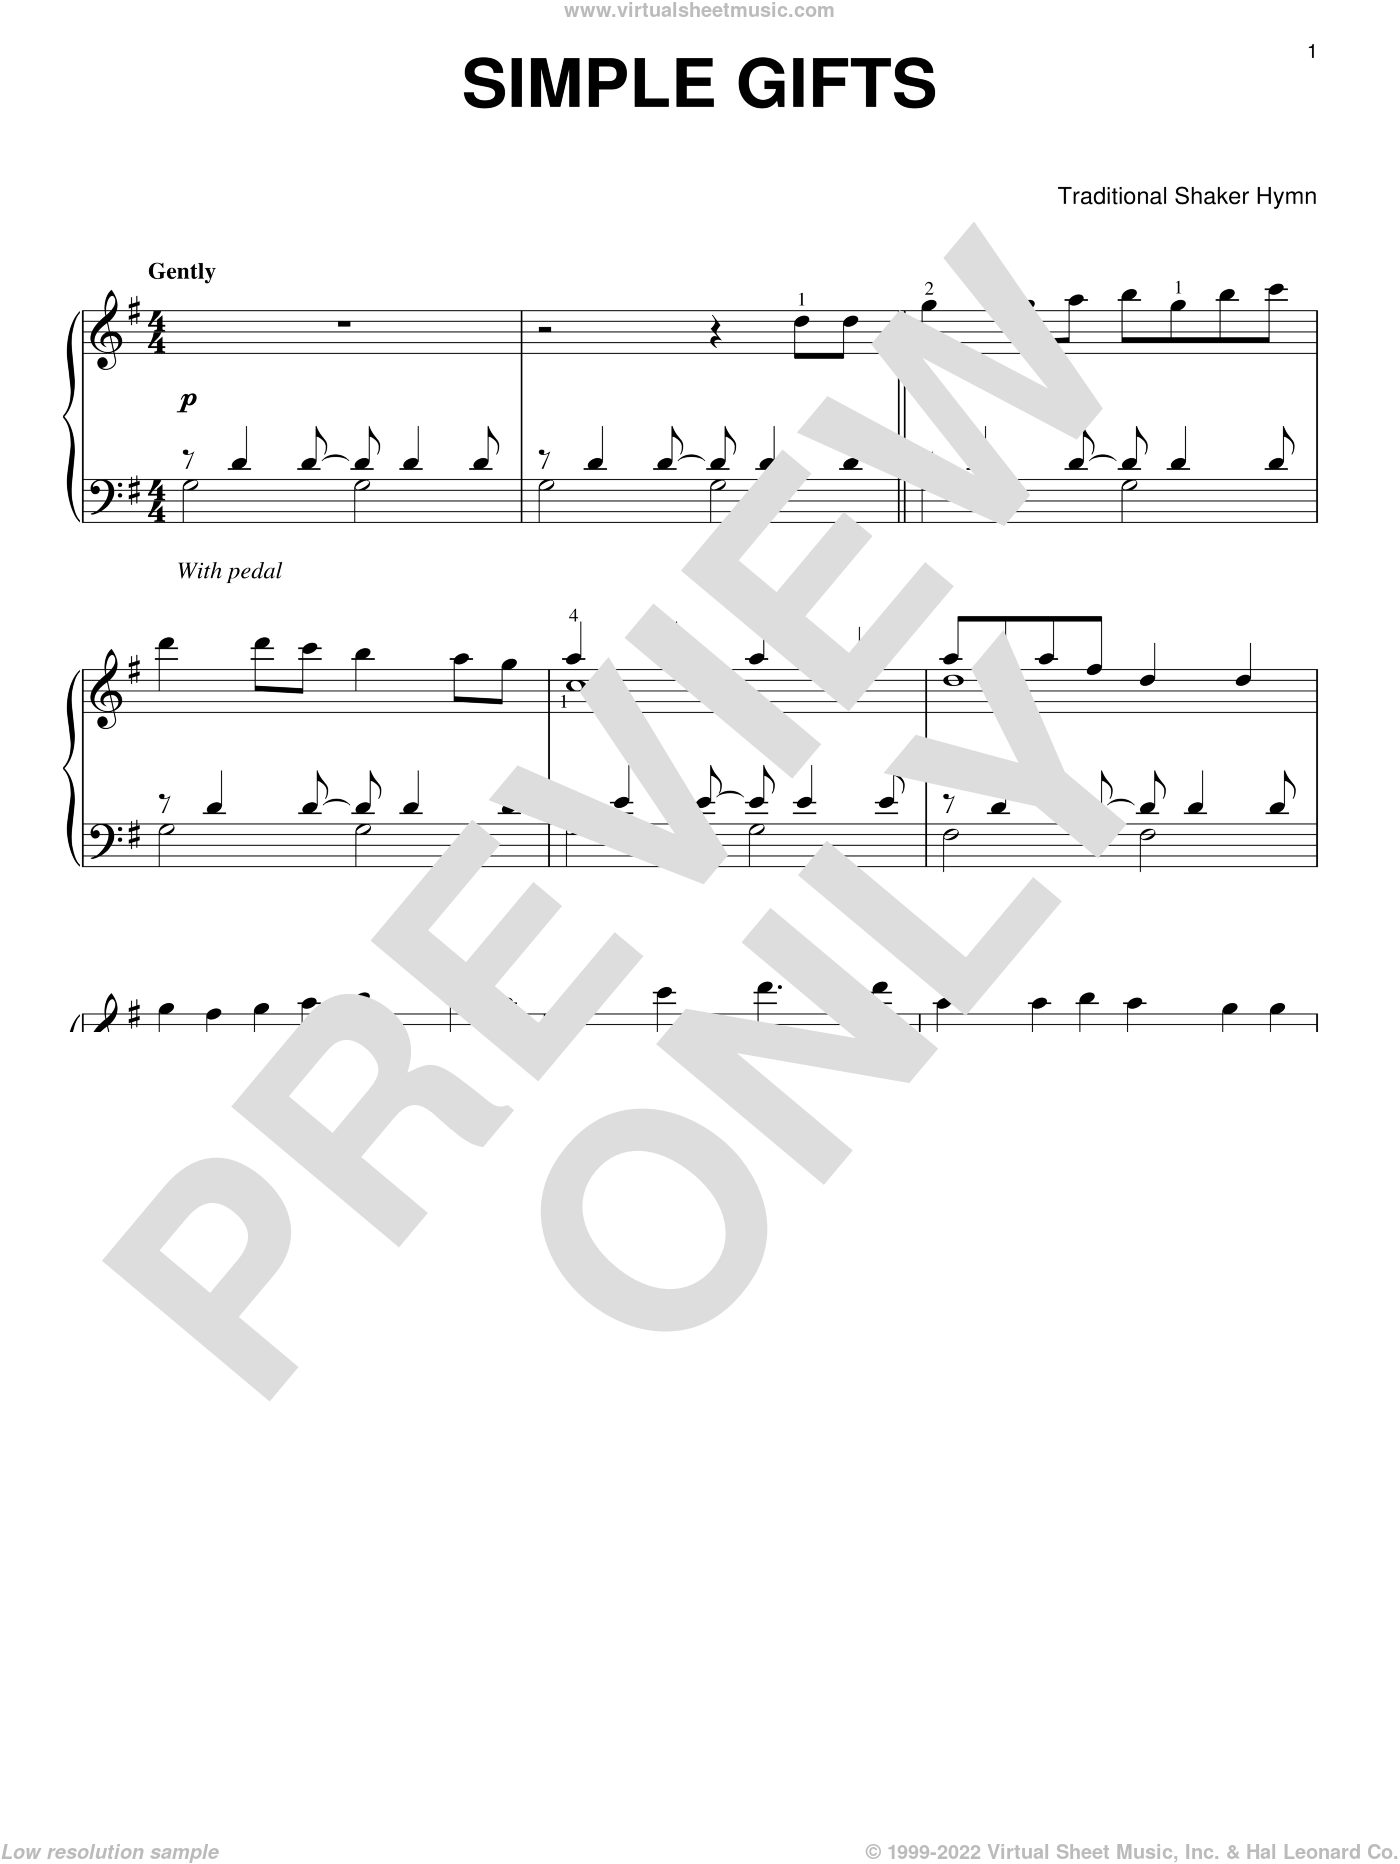 Simple Gifts sheet music for piano solo, classical score, intermediate skill level